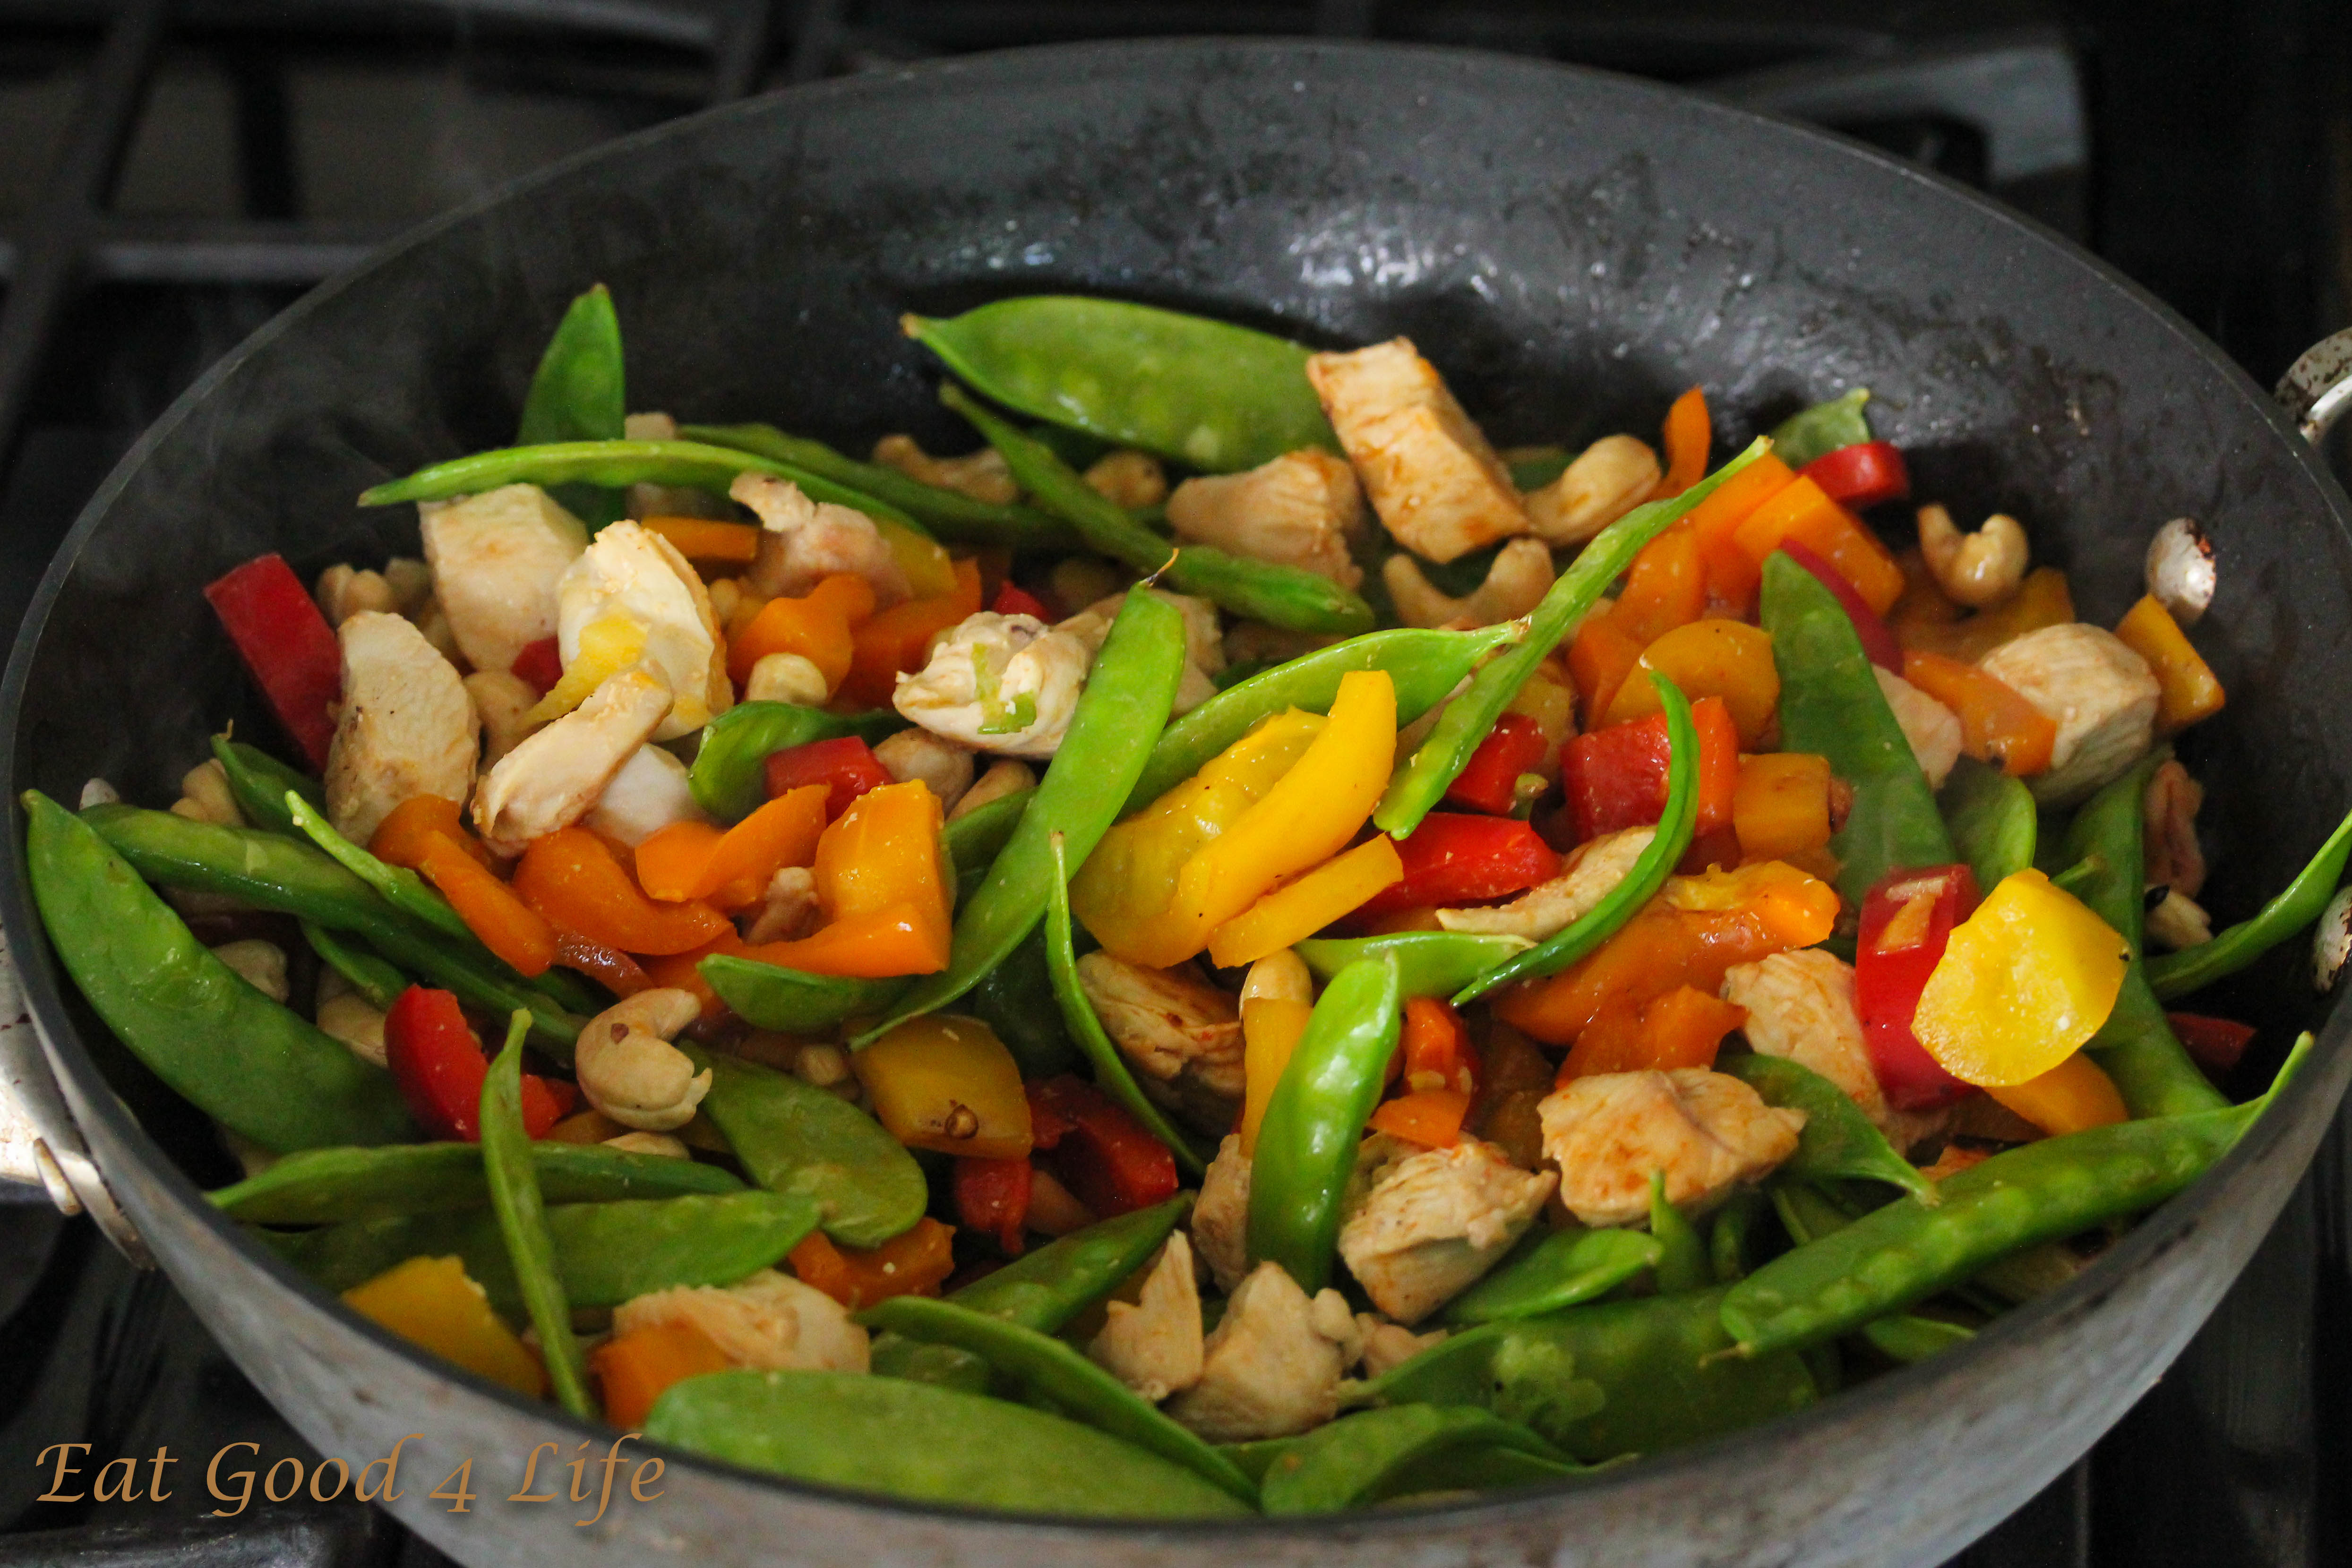 Anyhow, I was still able to post this Kung Pao Chicken recipe for you ...